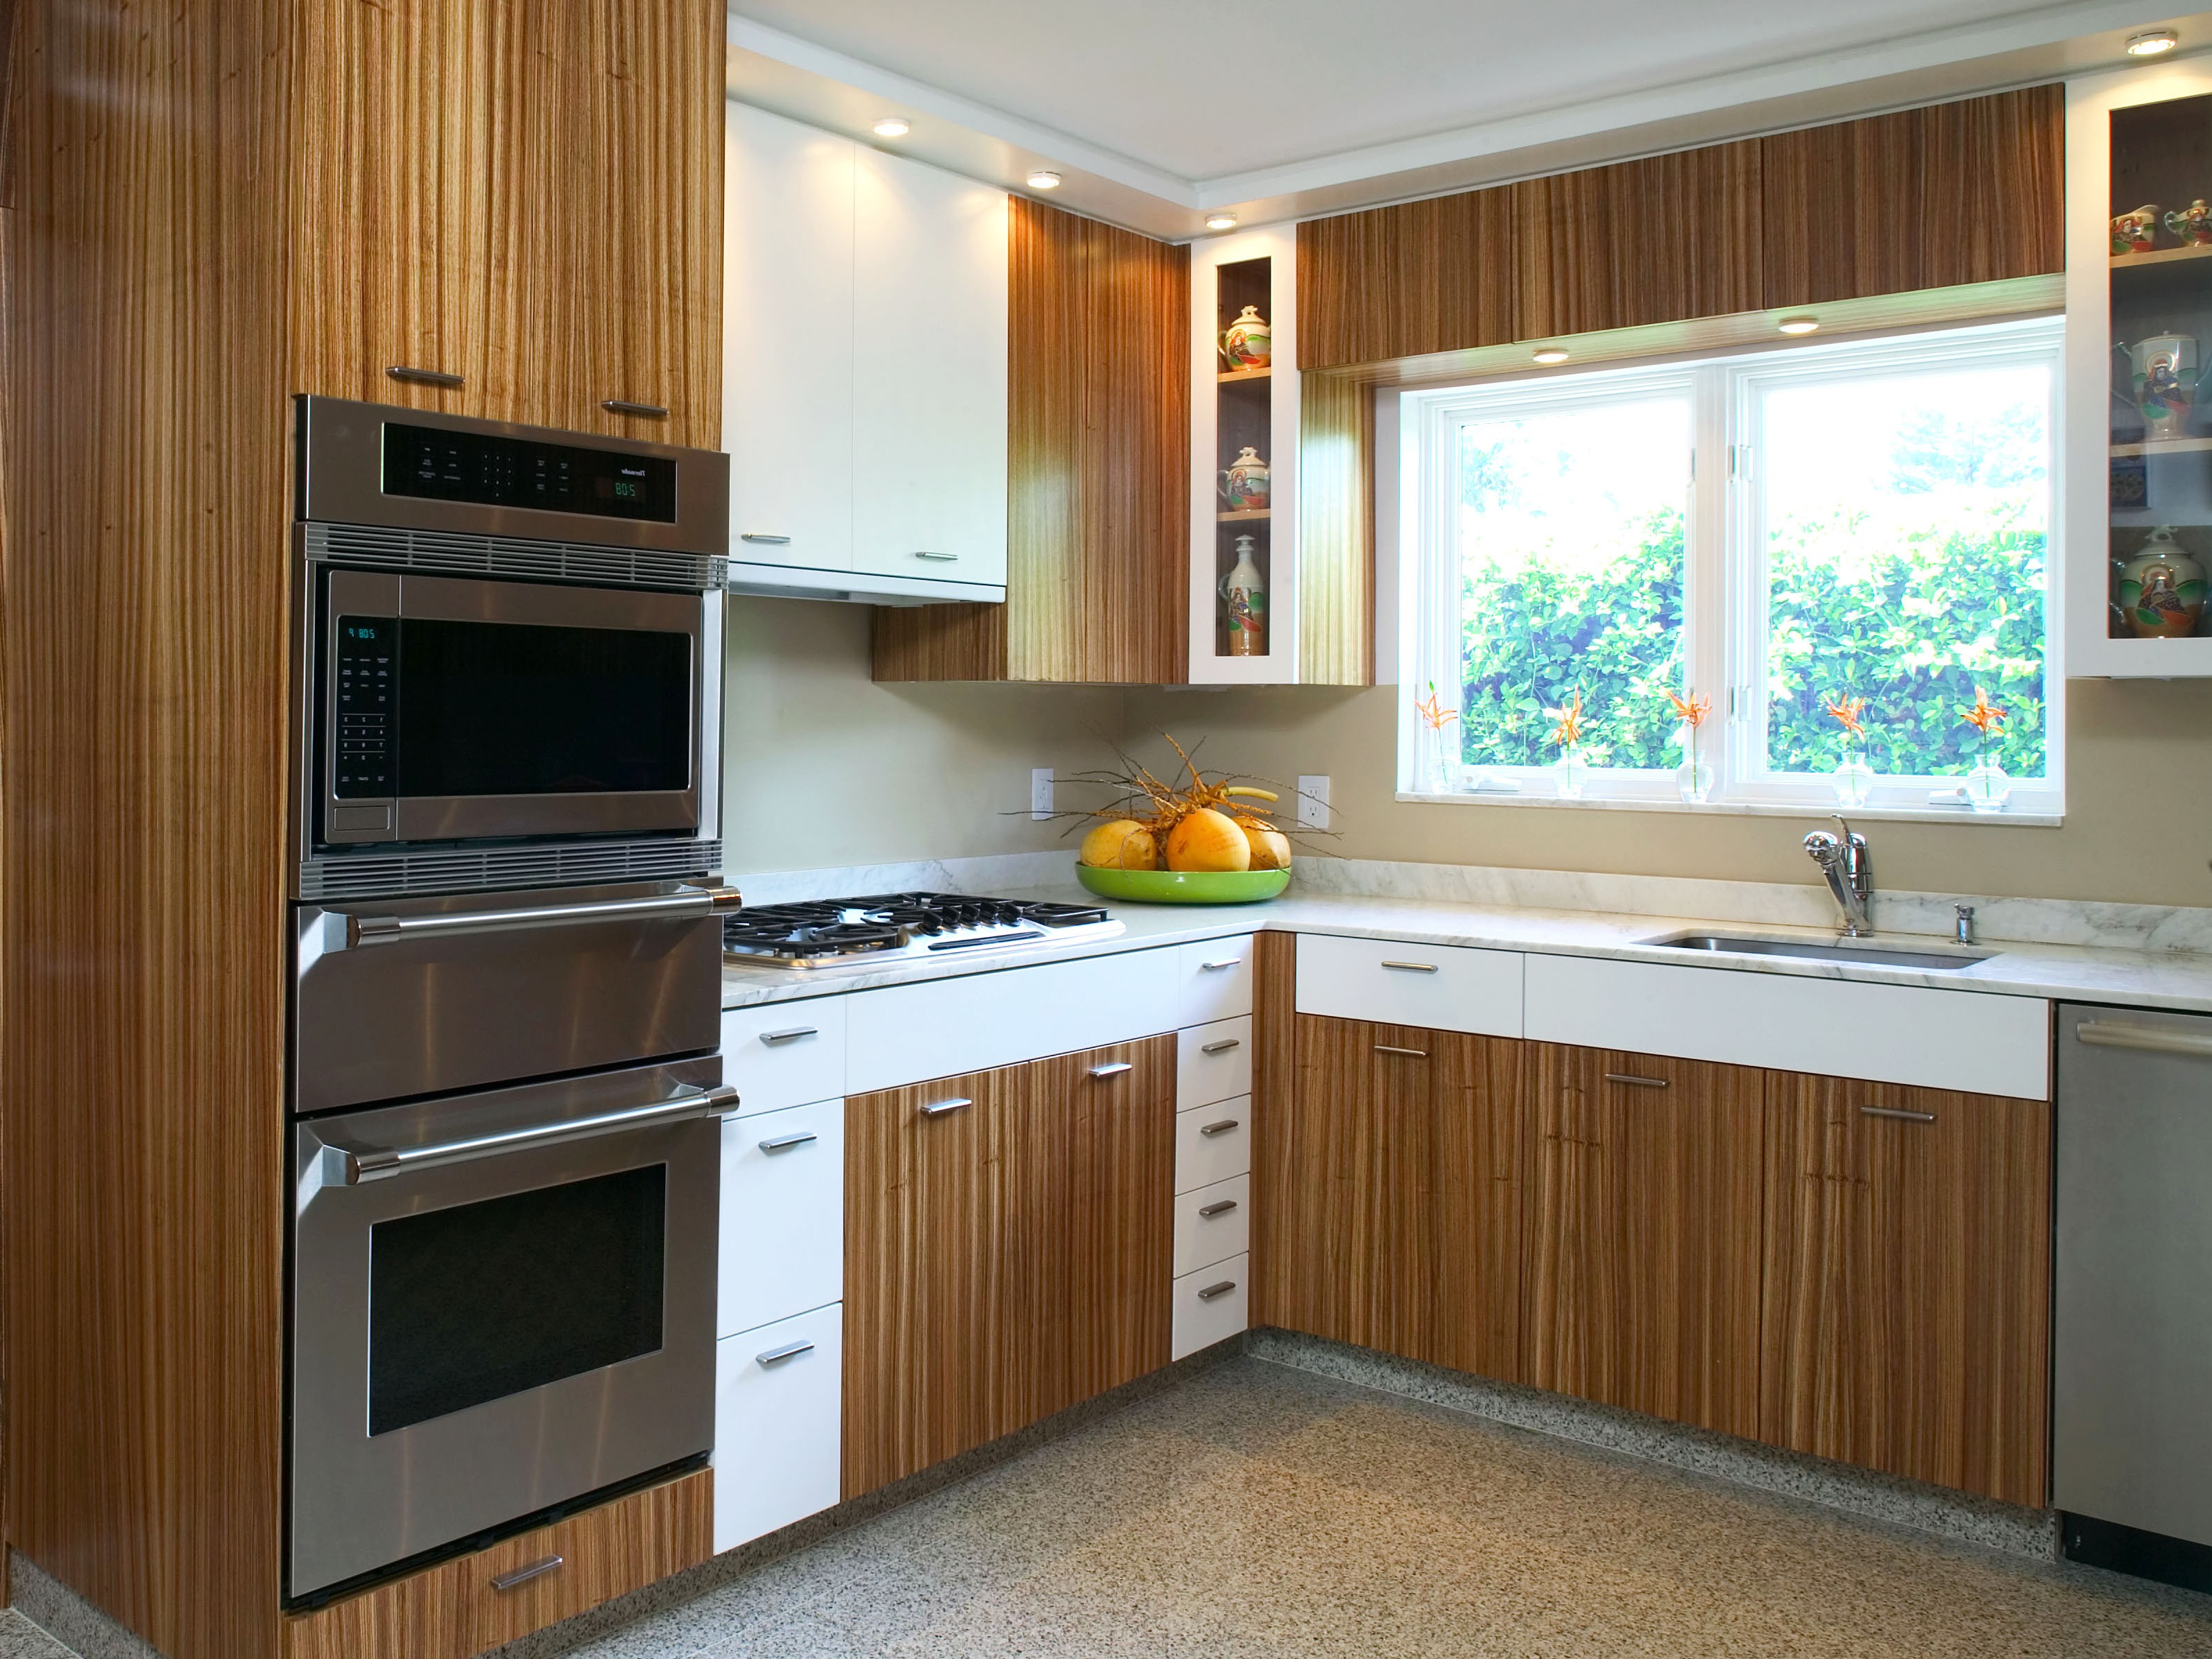 Zebra wood kitchen cabinets - Zebrawood Cabinets For Modern Kitchen Image 18 Of 18